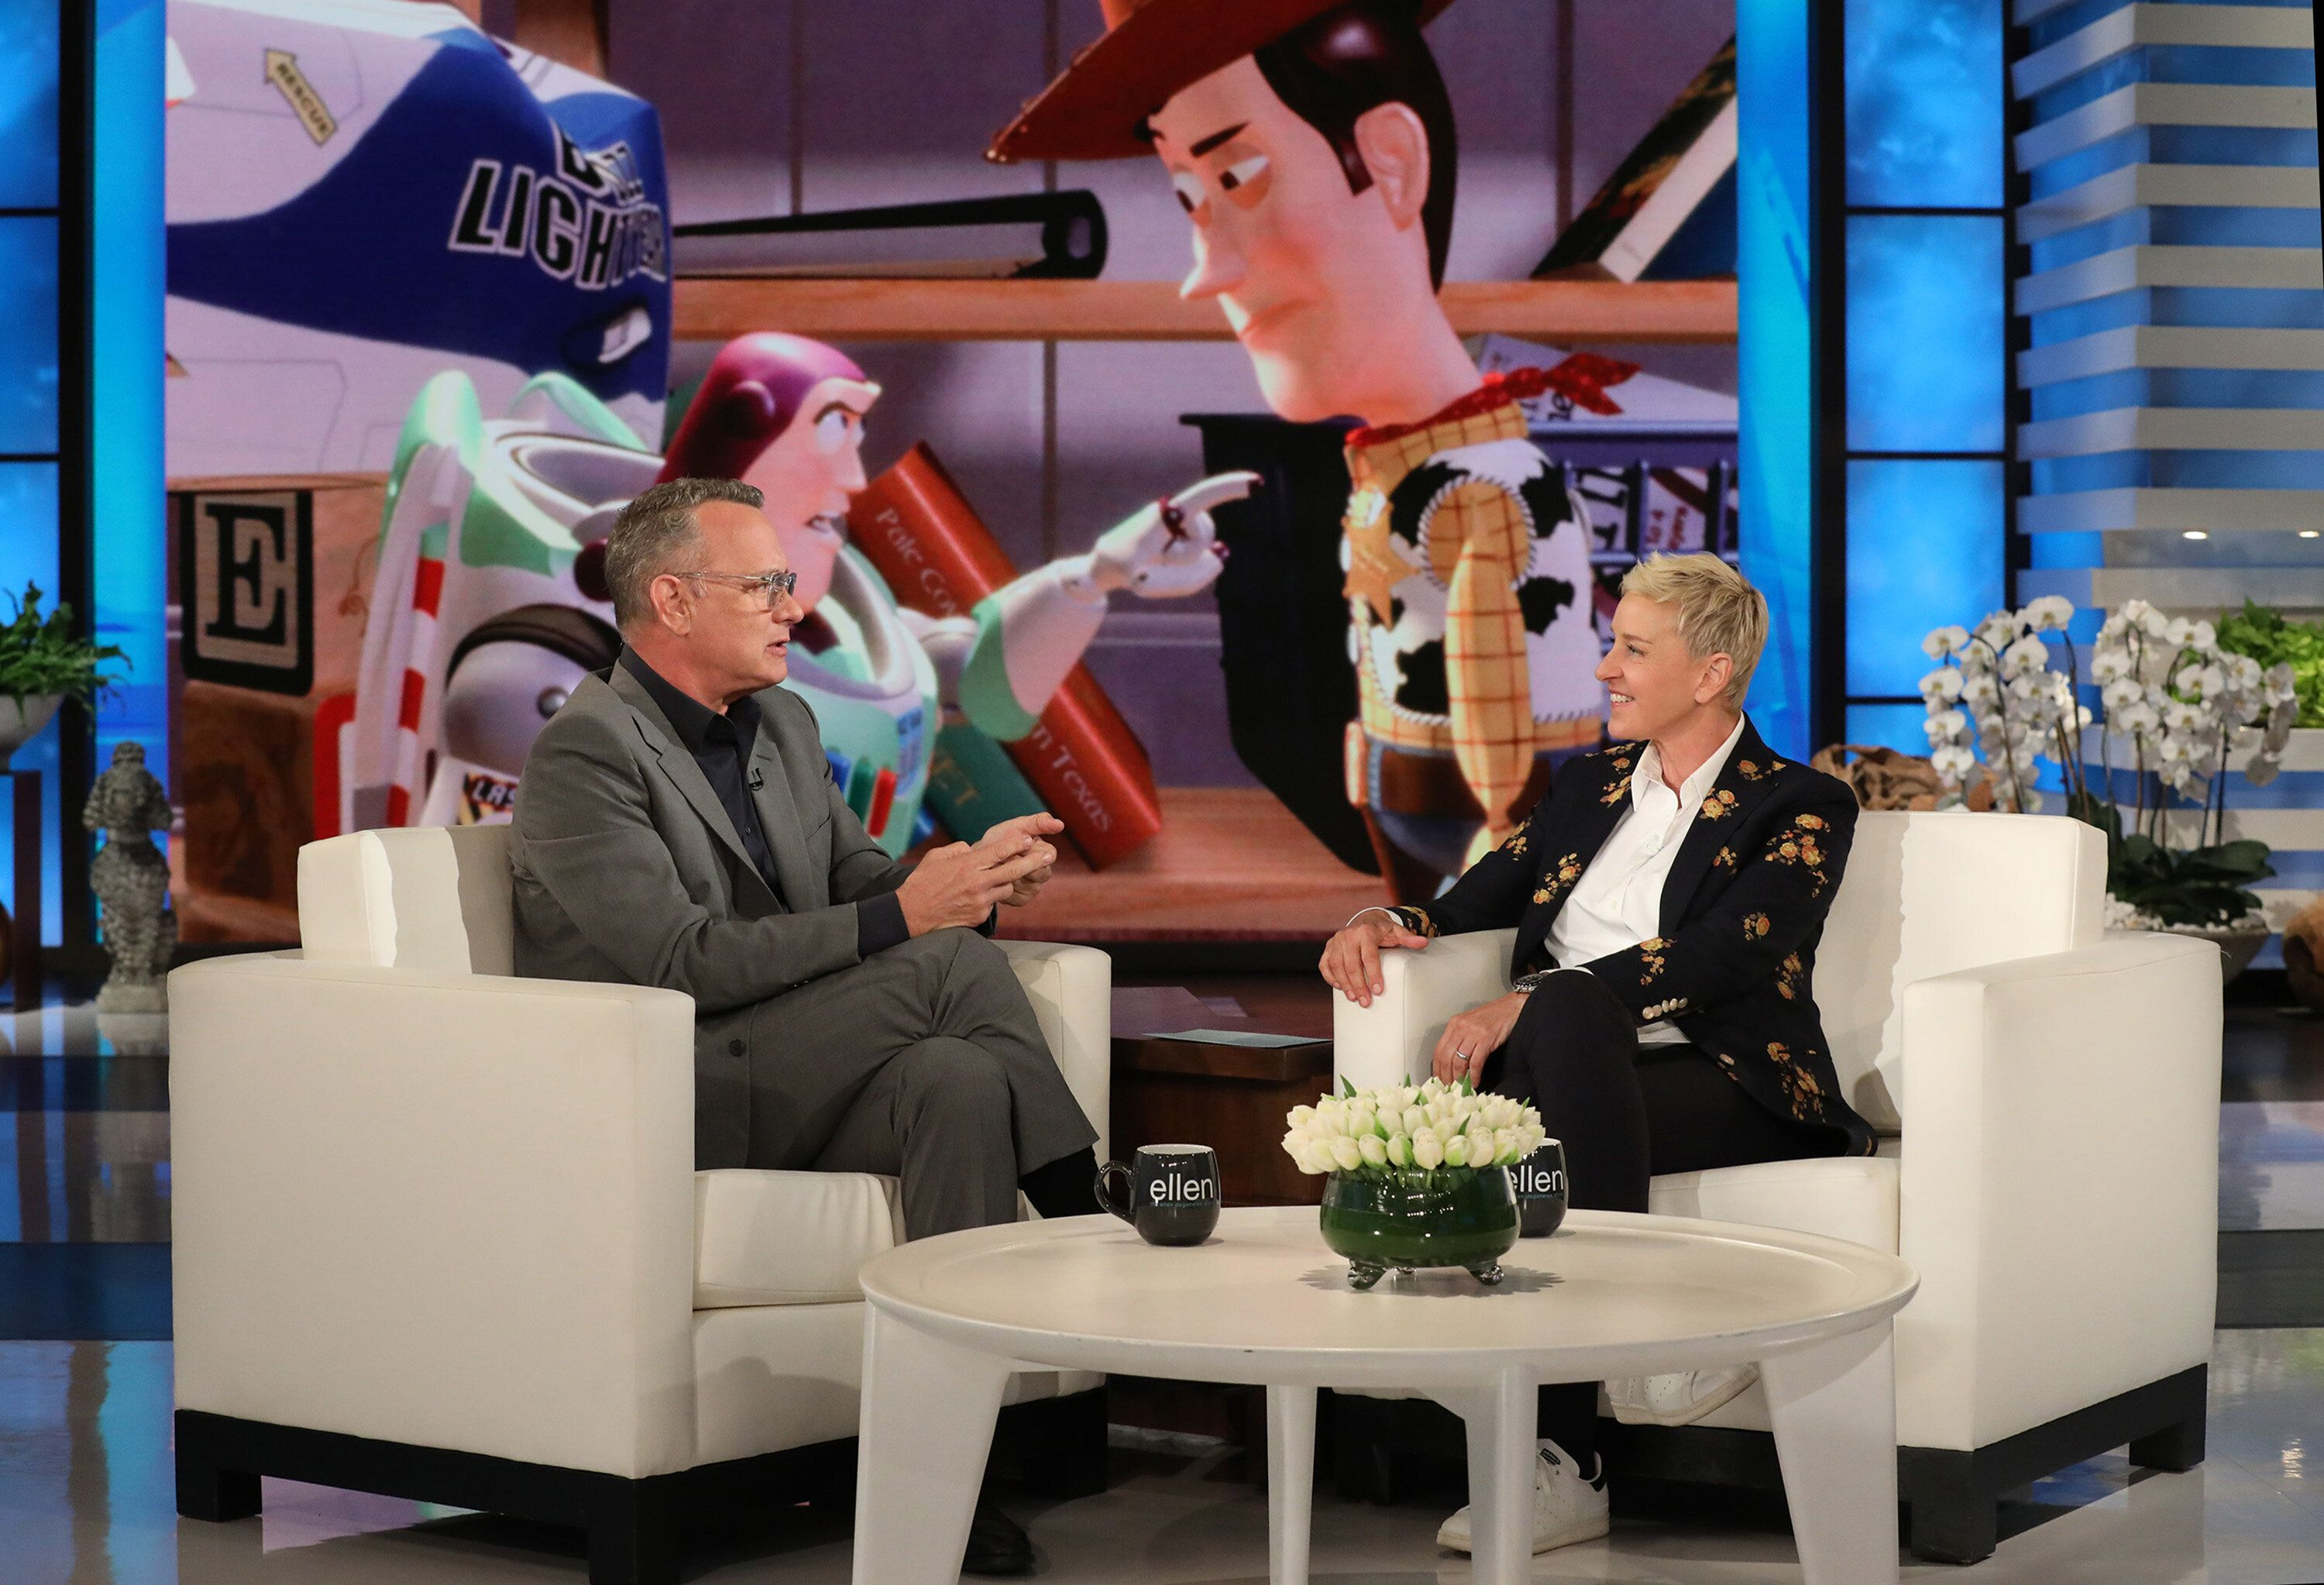 Tom Hanks Guarantees 'Toy Story 4' Will Be 'Emotional' Expertise